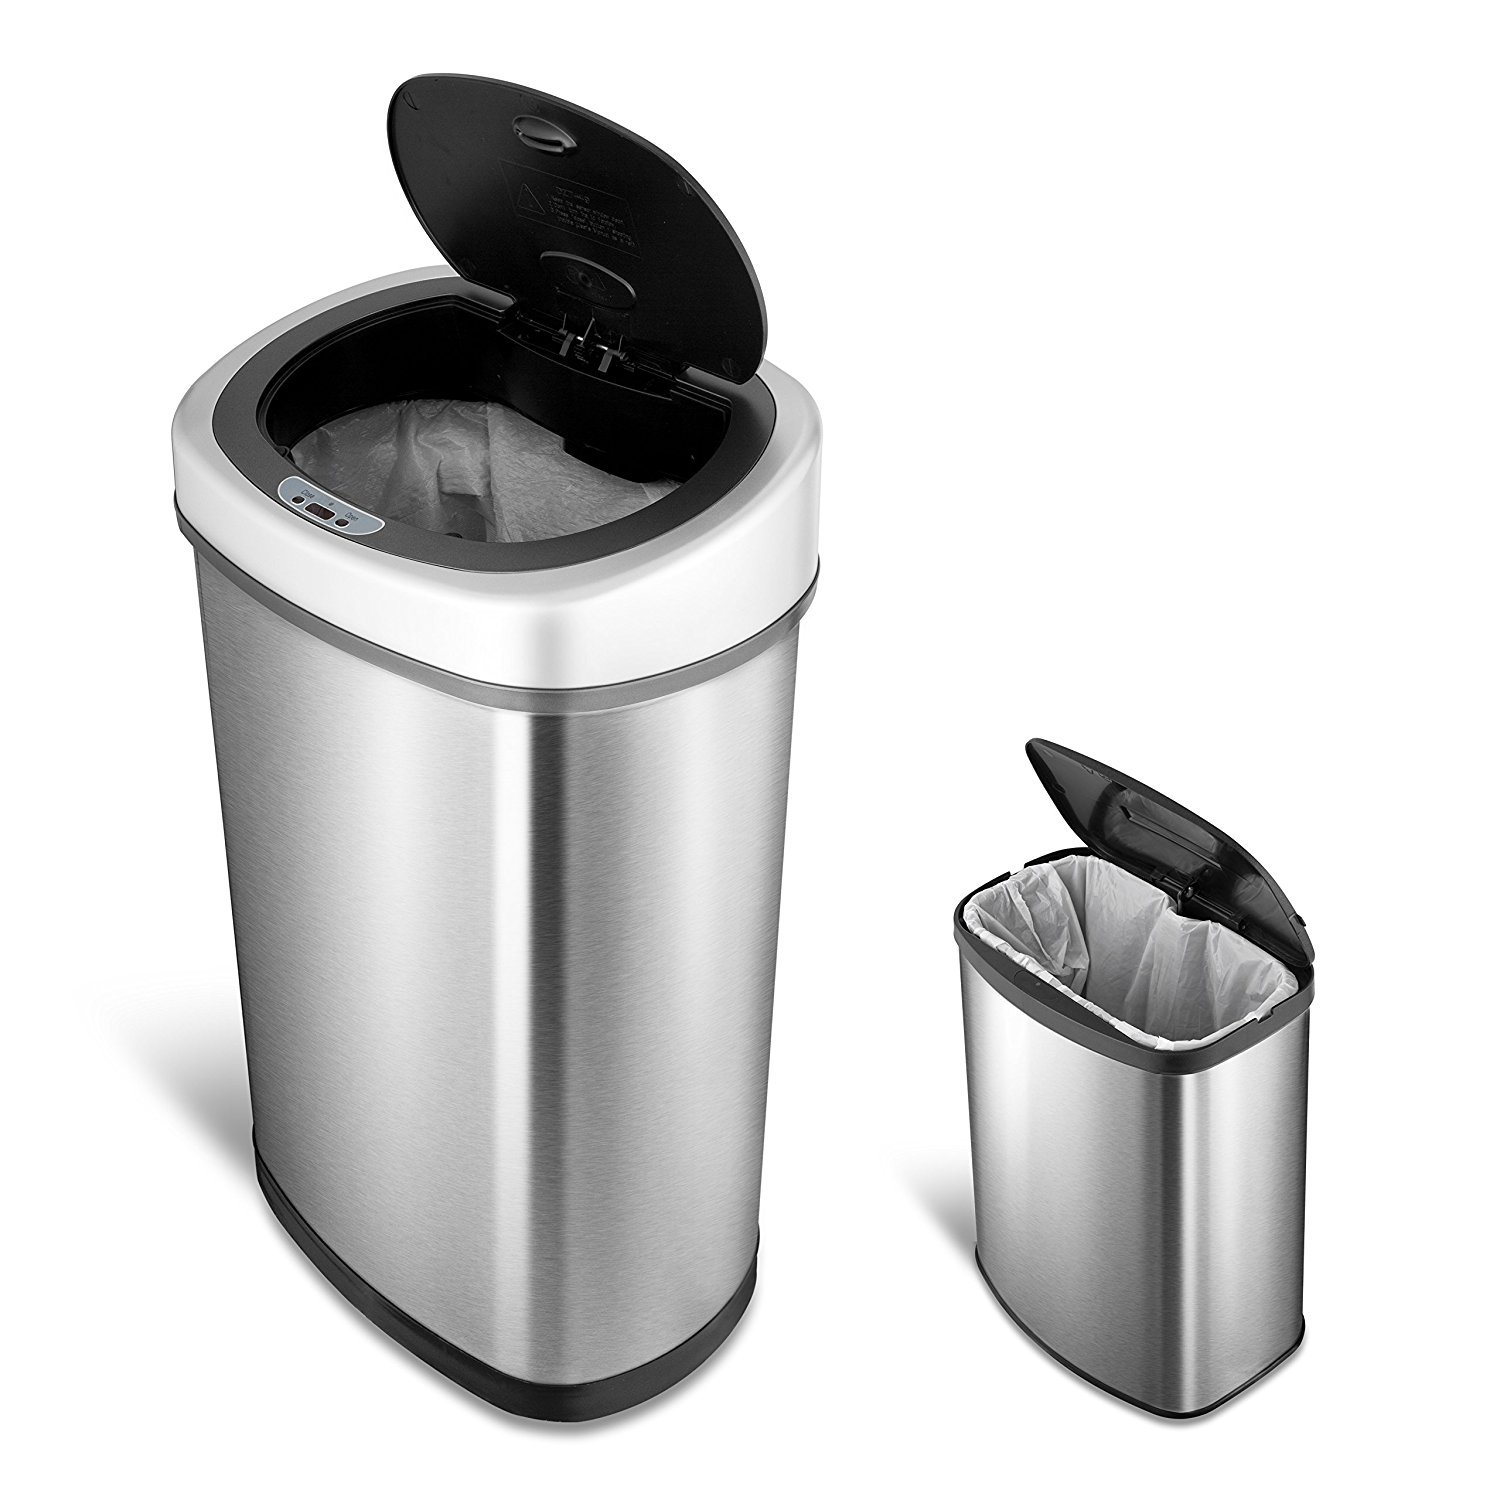 NINESTARS CB-DZT-50-9/8-1C The Original Touchless Automatic Motion Sensor Trash Can Combo Set, 13.2 Gal. / 50 L. & 2.1 Gal. / 8 L., Stainless Steel